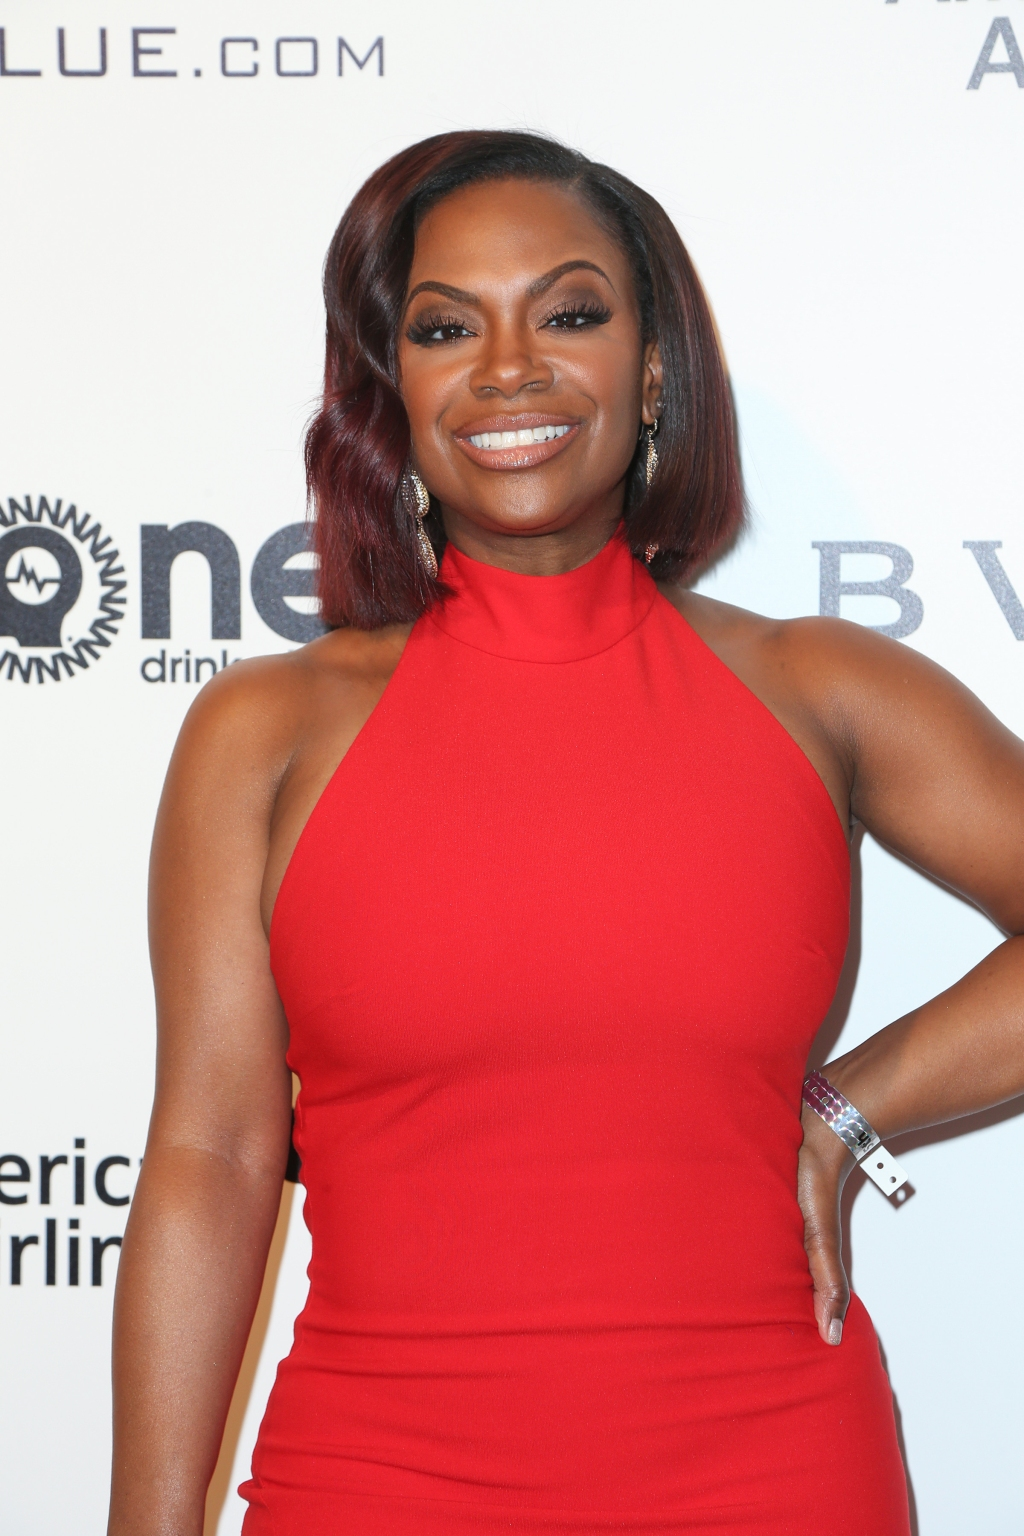 Is Kandi Burruss Expecting a Baby? | Black America Web